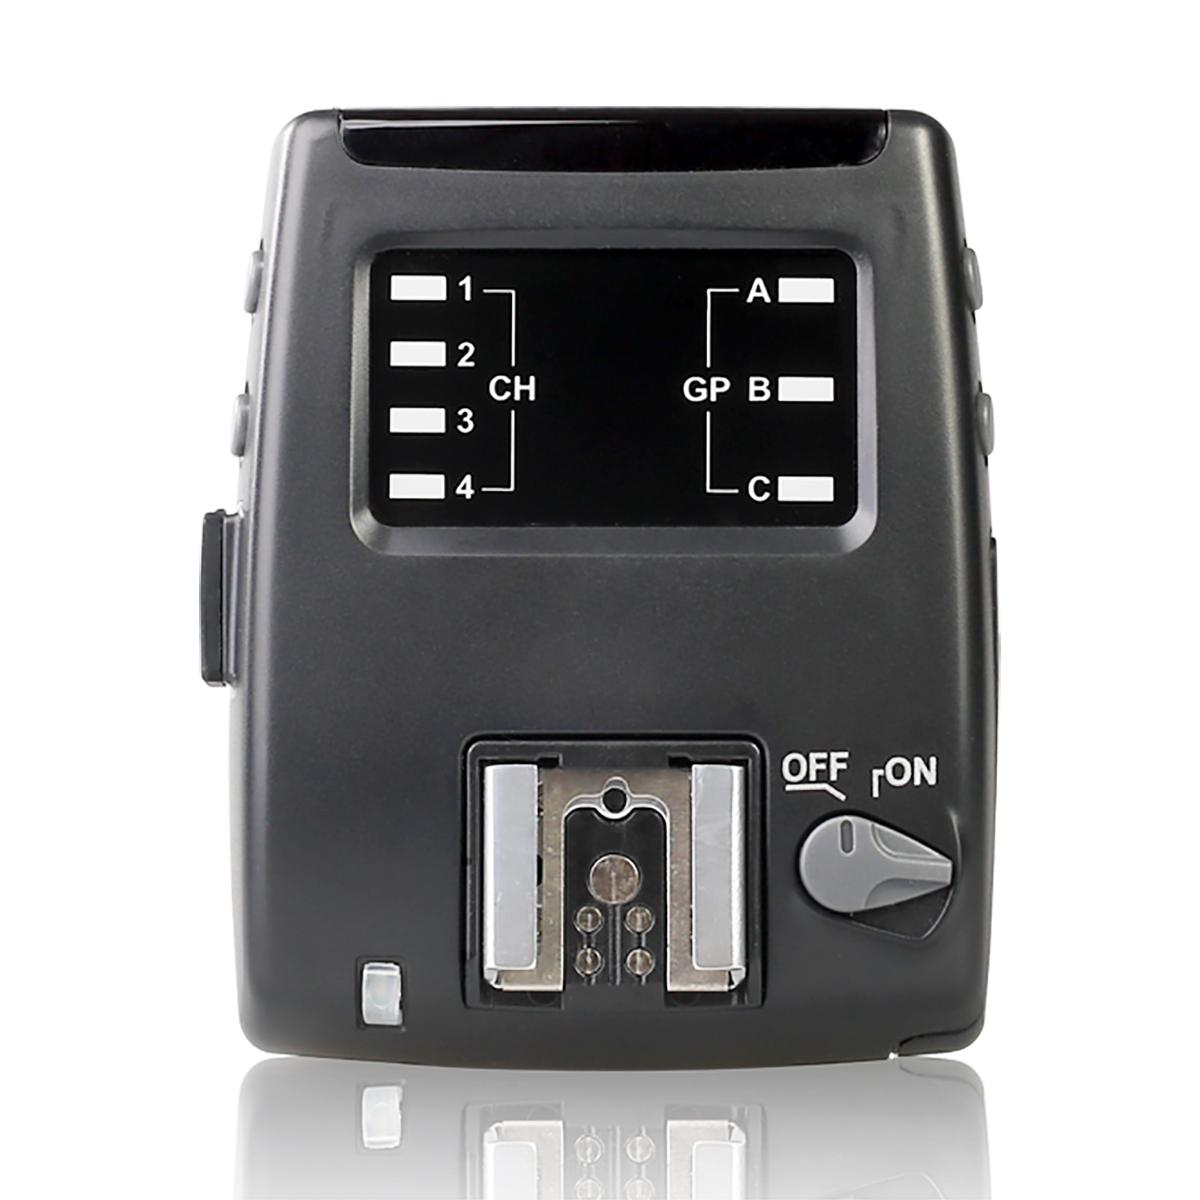 Meirkergr Mekemk-Gt600-Cttl Canon High-Speed Synchronous Multi-Channel Receiver Wireless Flash By Taobao Collection.